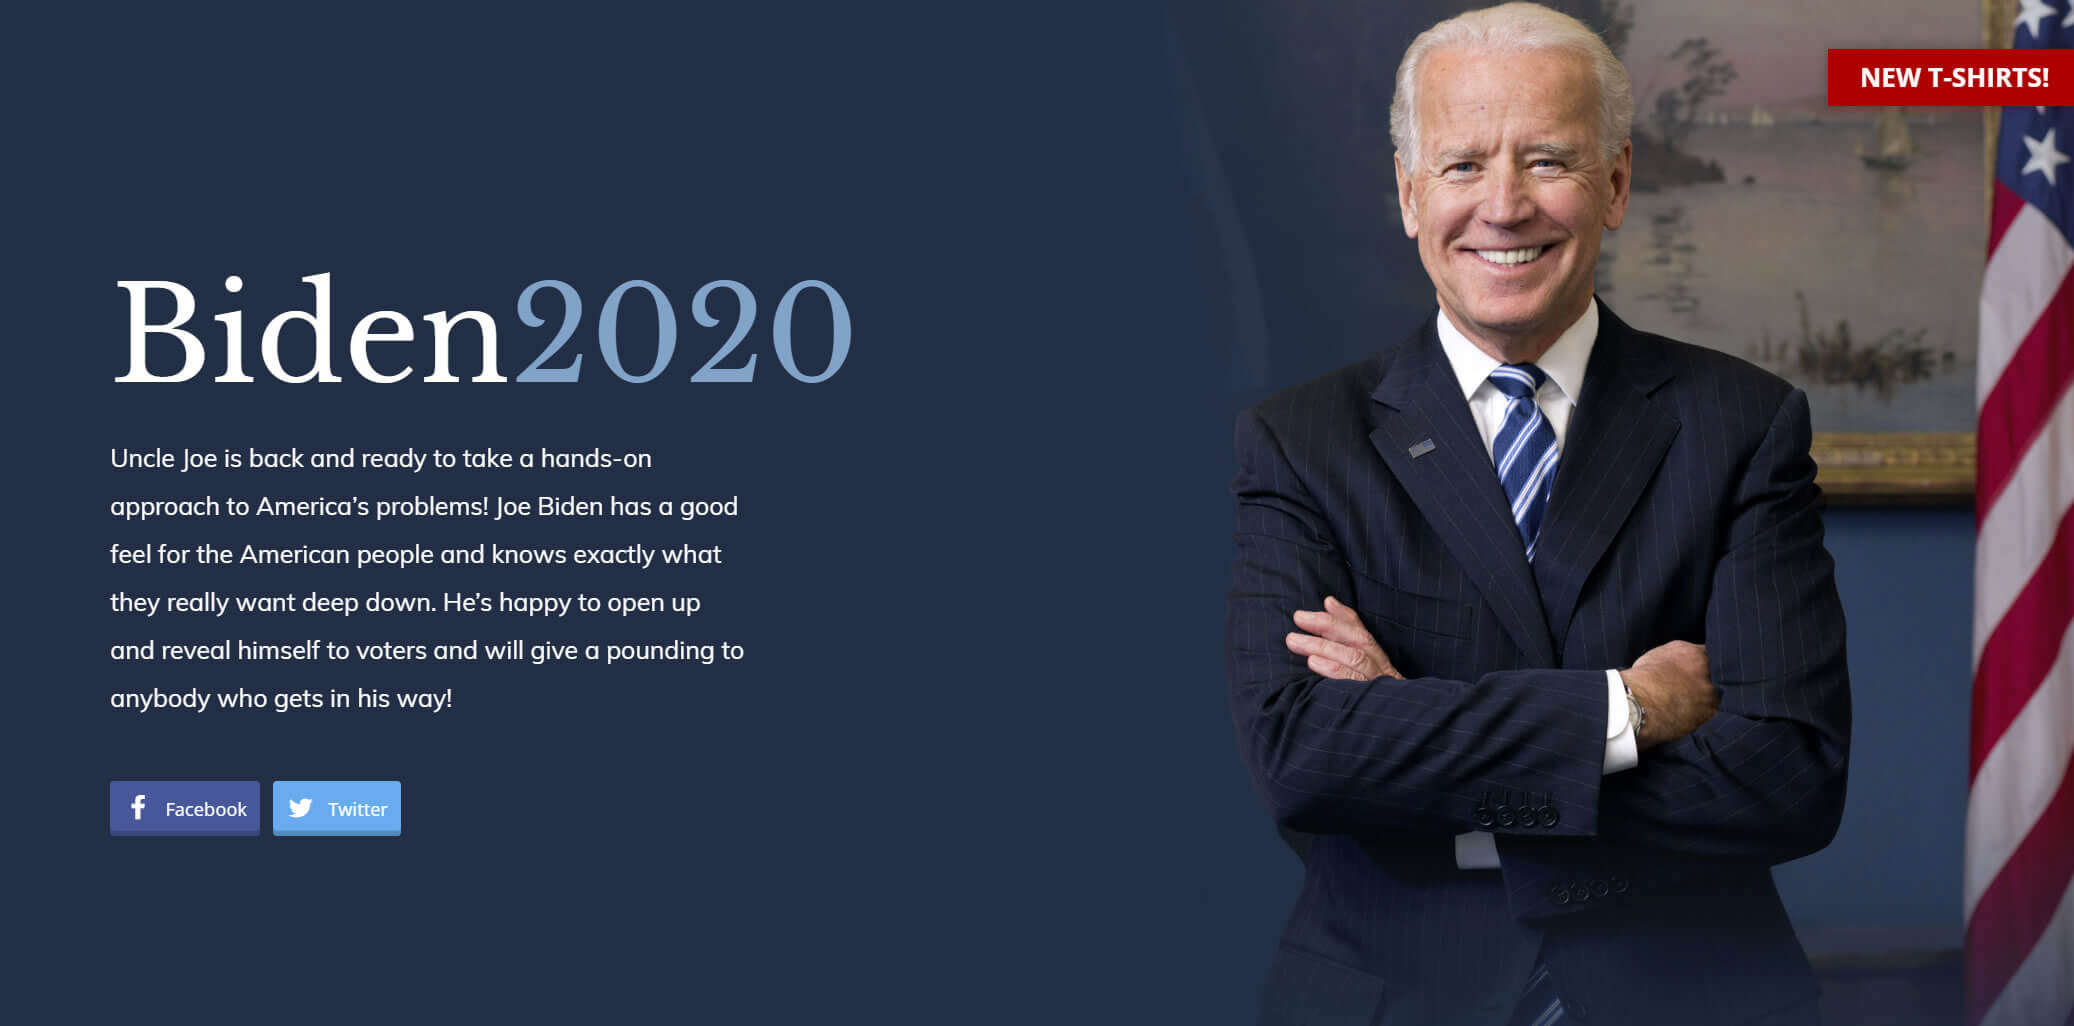 A fake Biden campaign site may be outperforming the real one